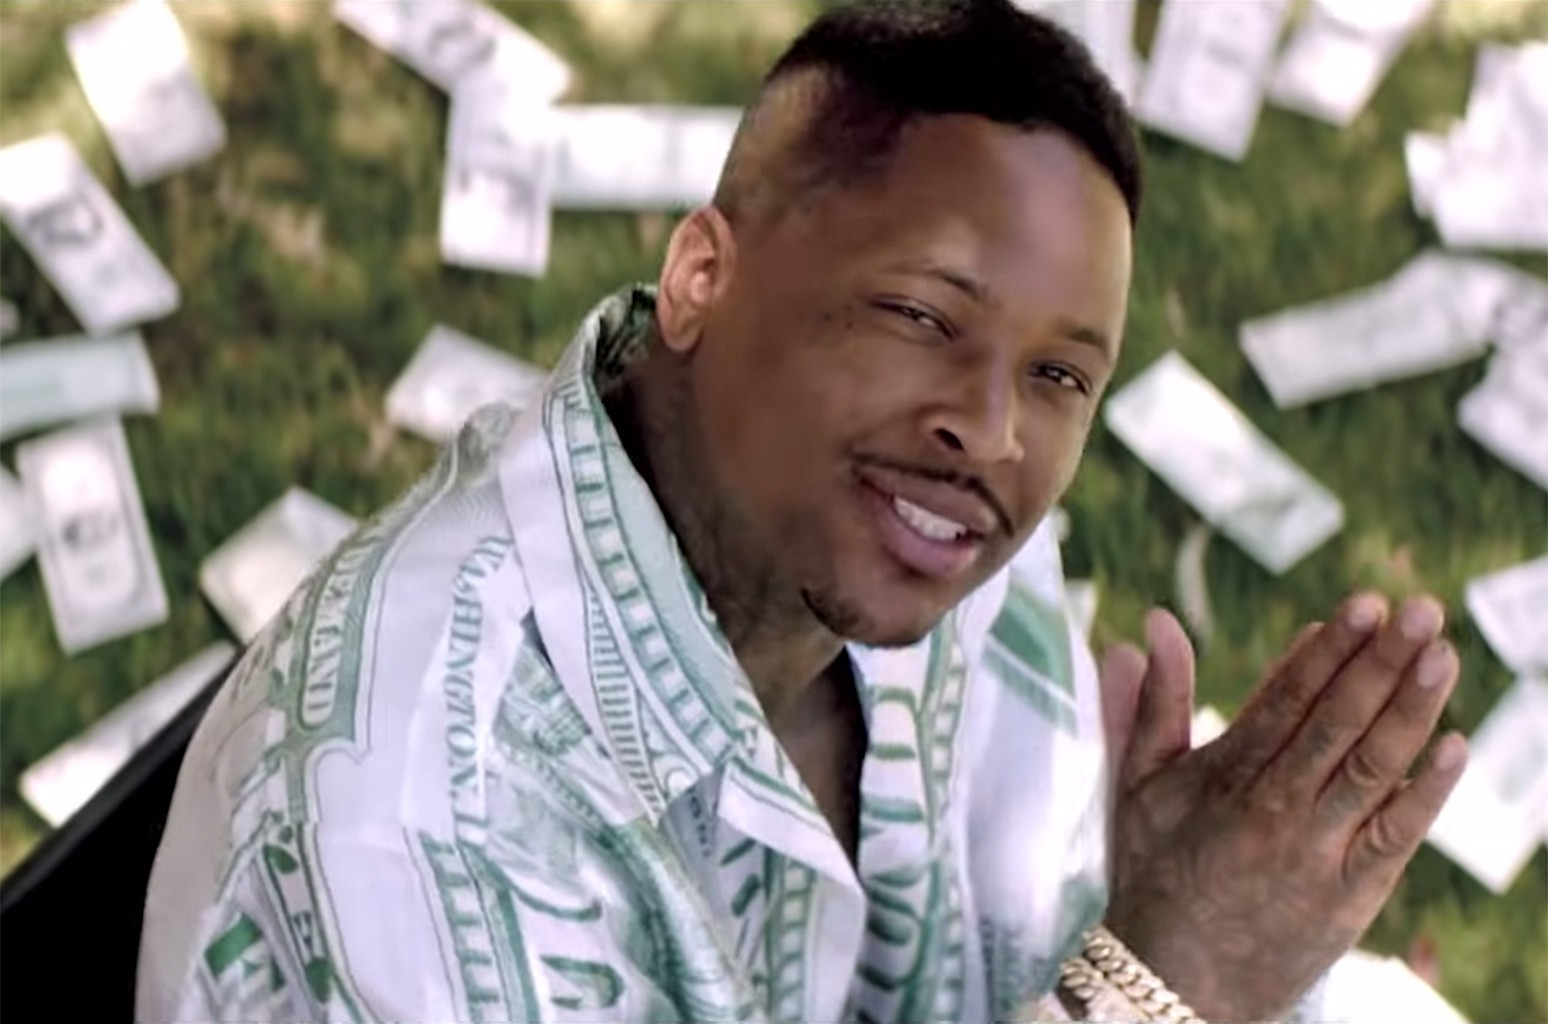 Here Are The Lyrics To Yg S Big Bank Feat 2 Chainz Big Sean